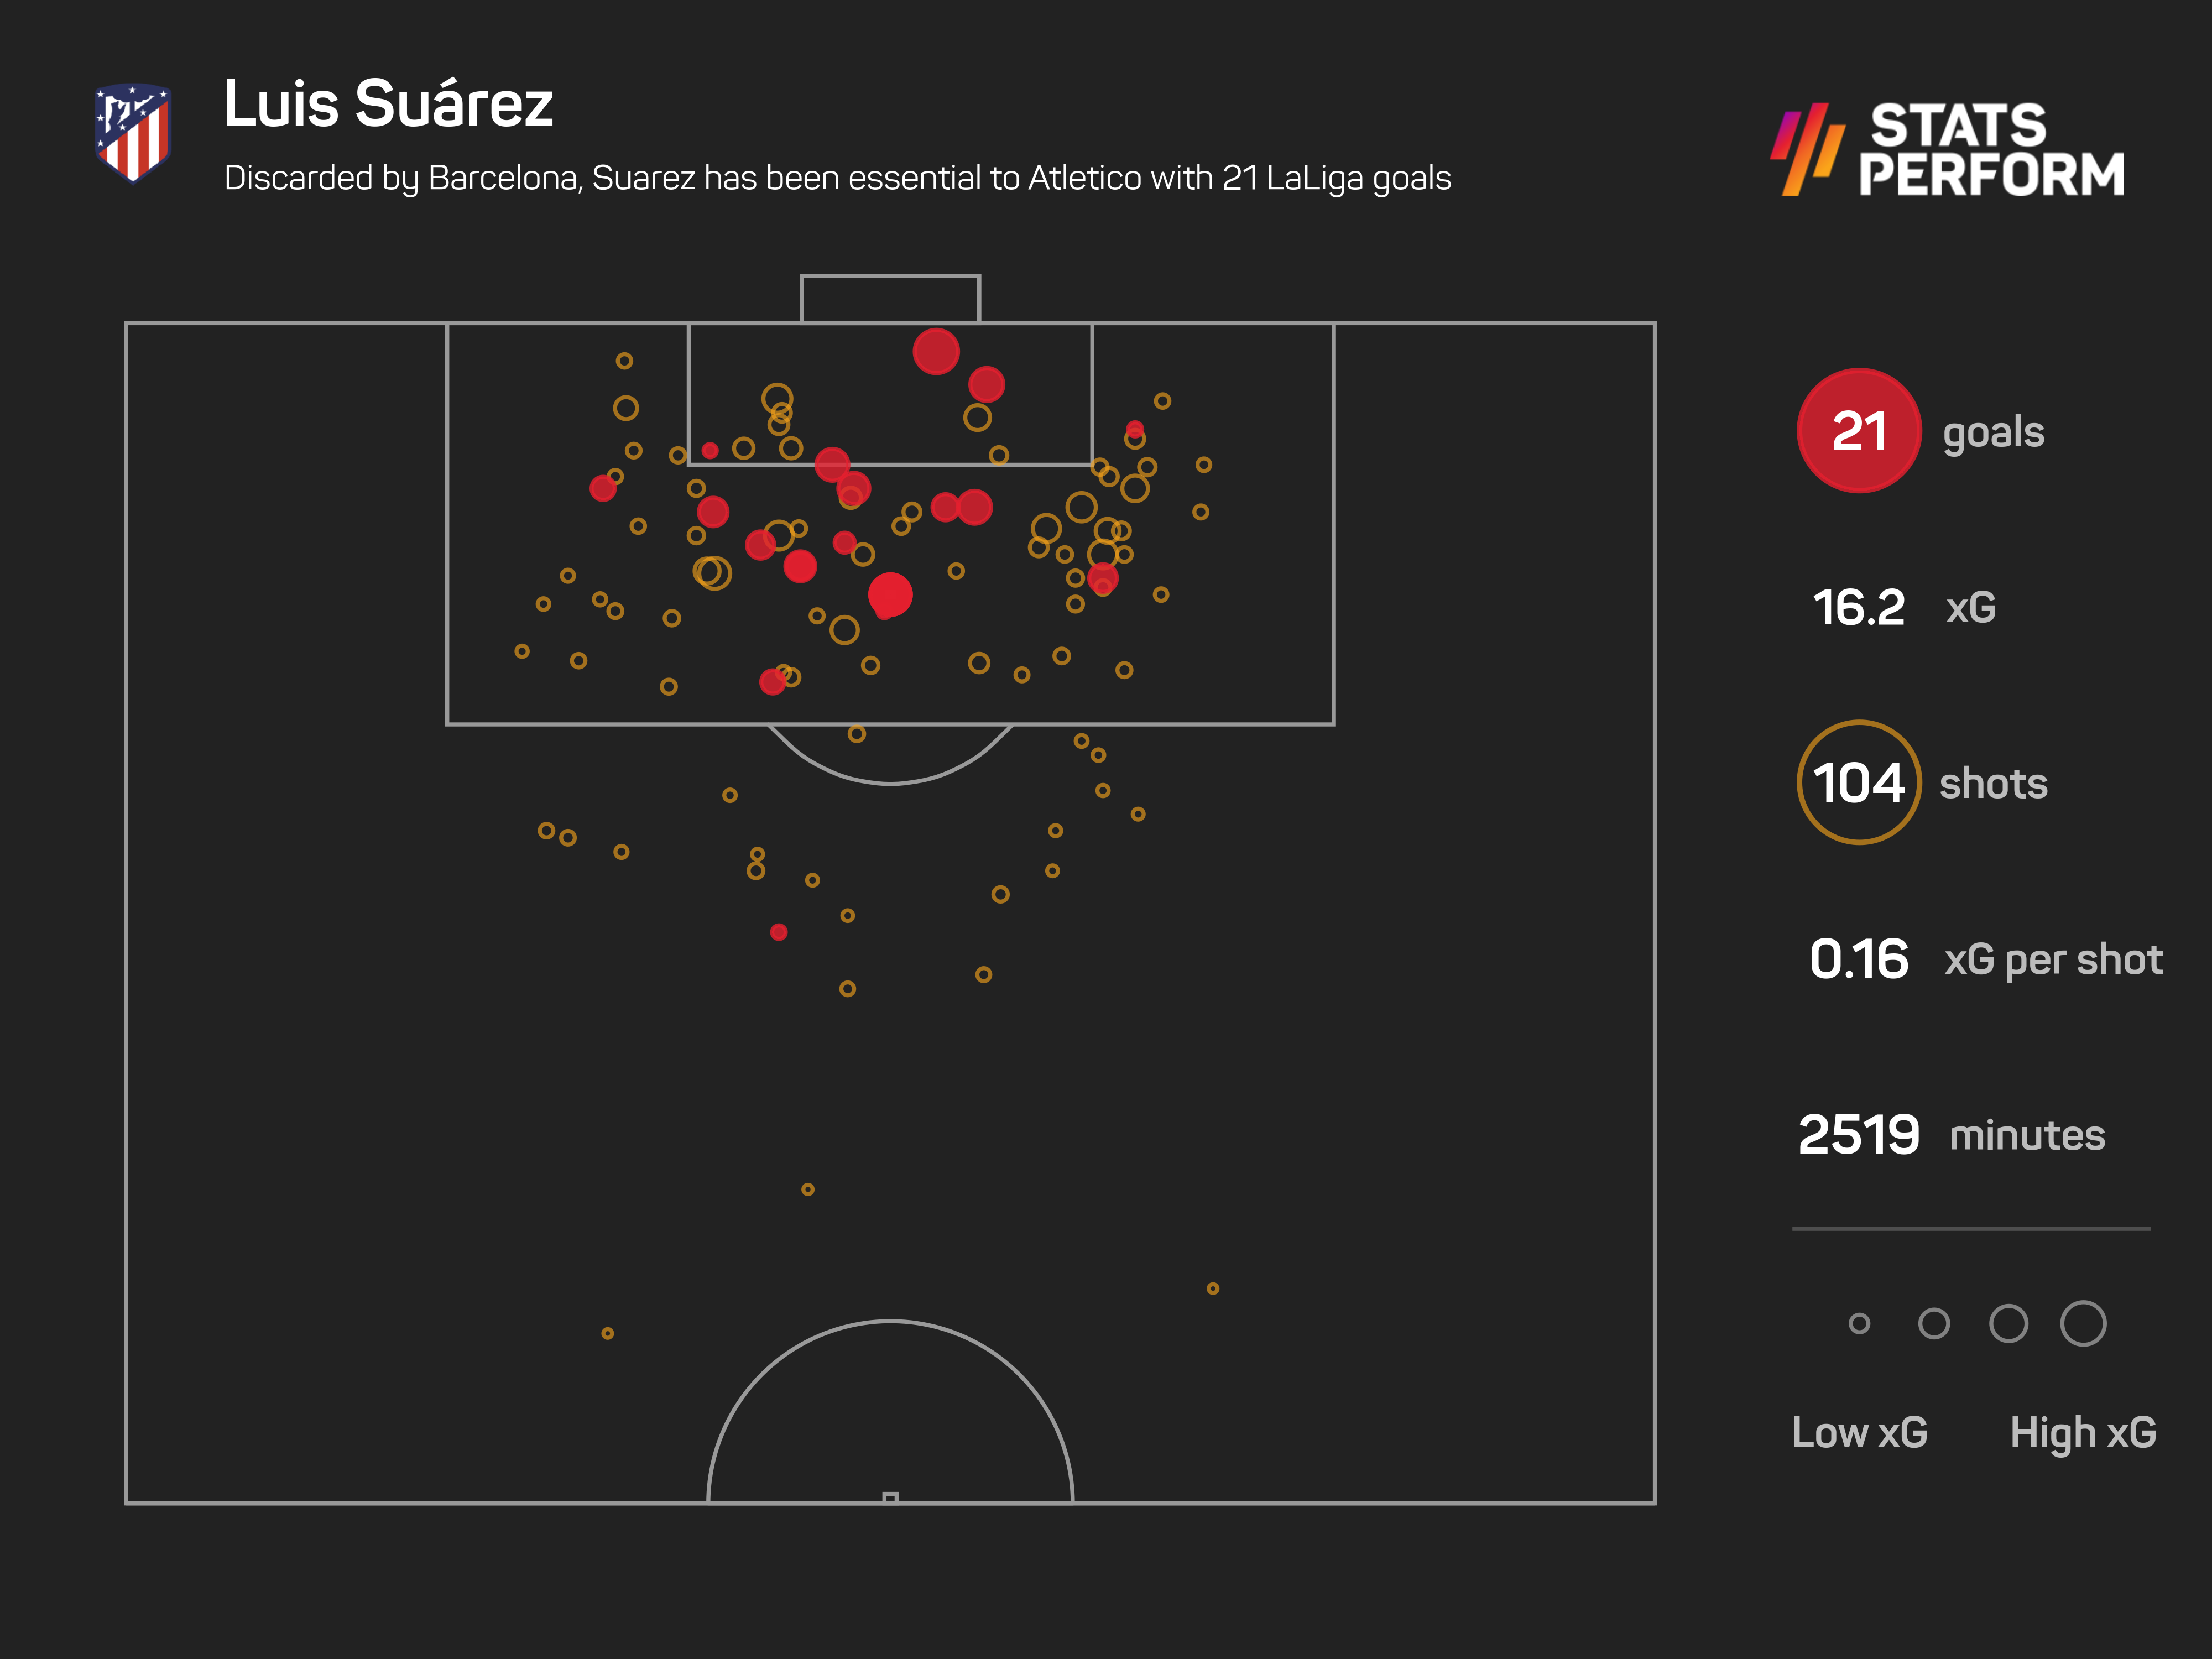 Discarded by Barcelona, Suarez has been essential to Atletico with 21 LaLiga goals